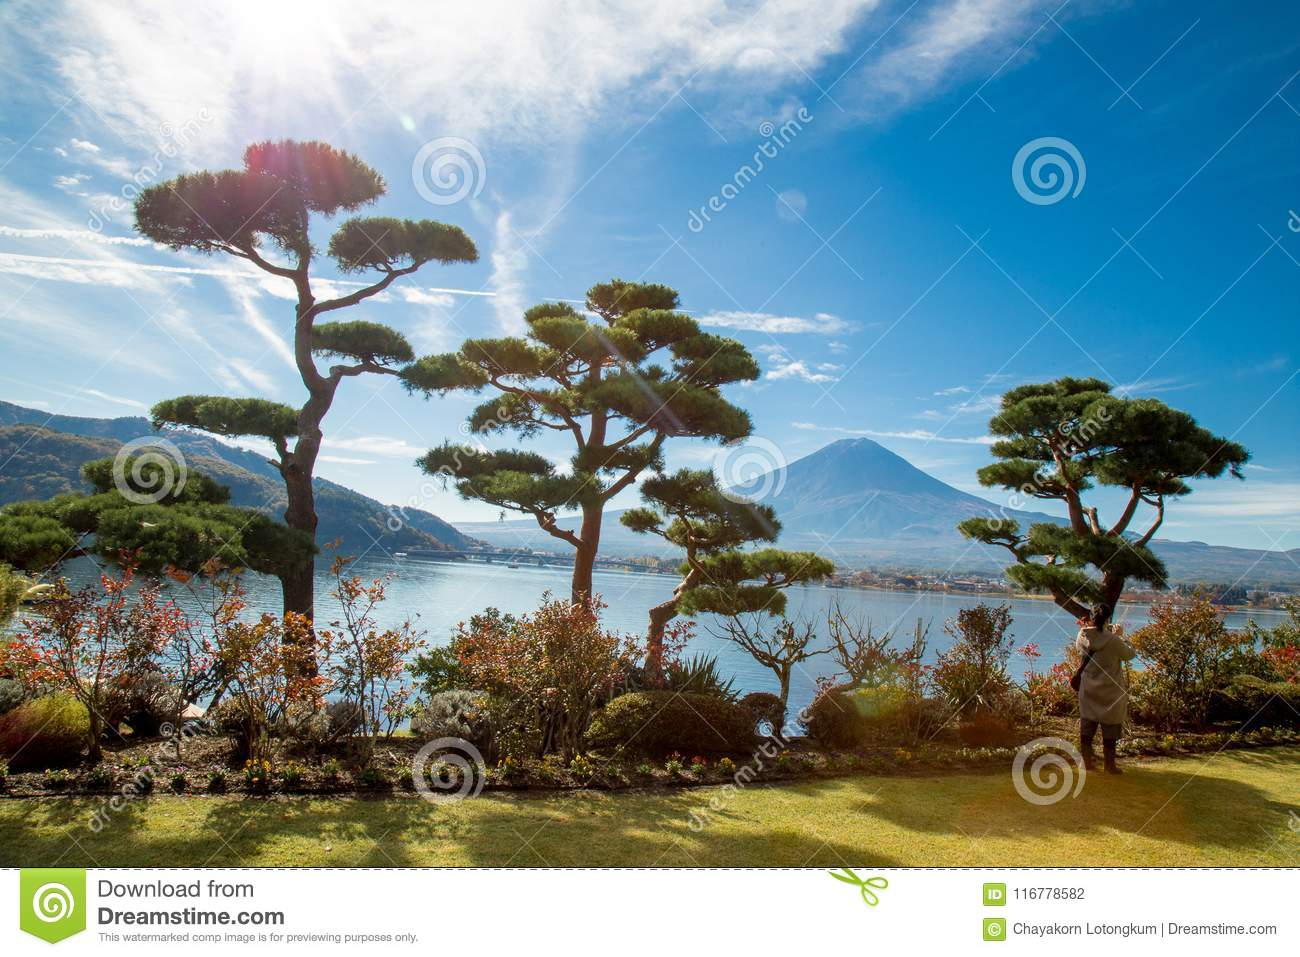 Fuji japan,fuji mountain at kawaguchiko lake snow landscape